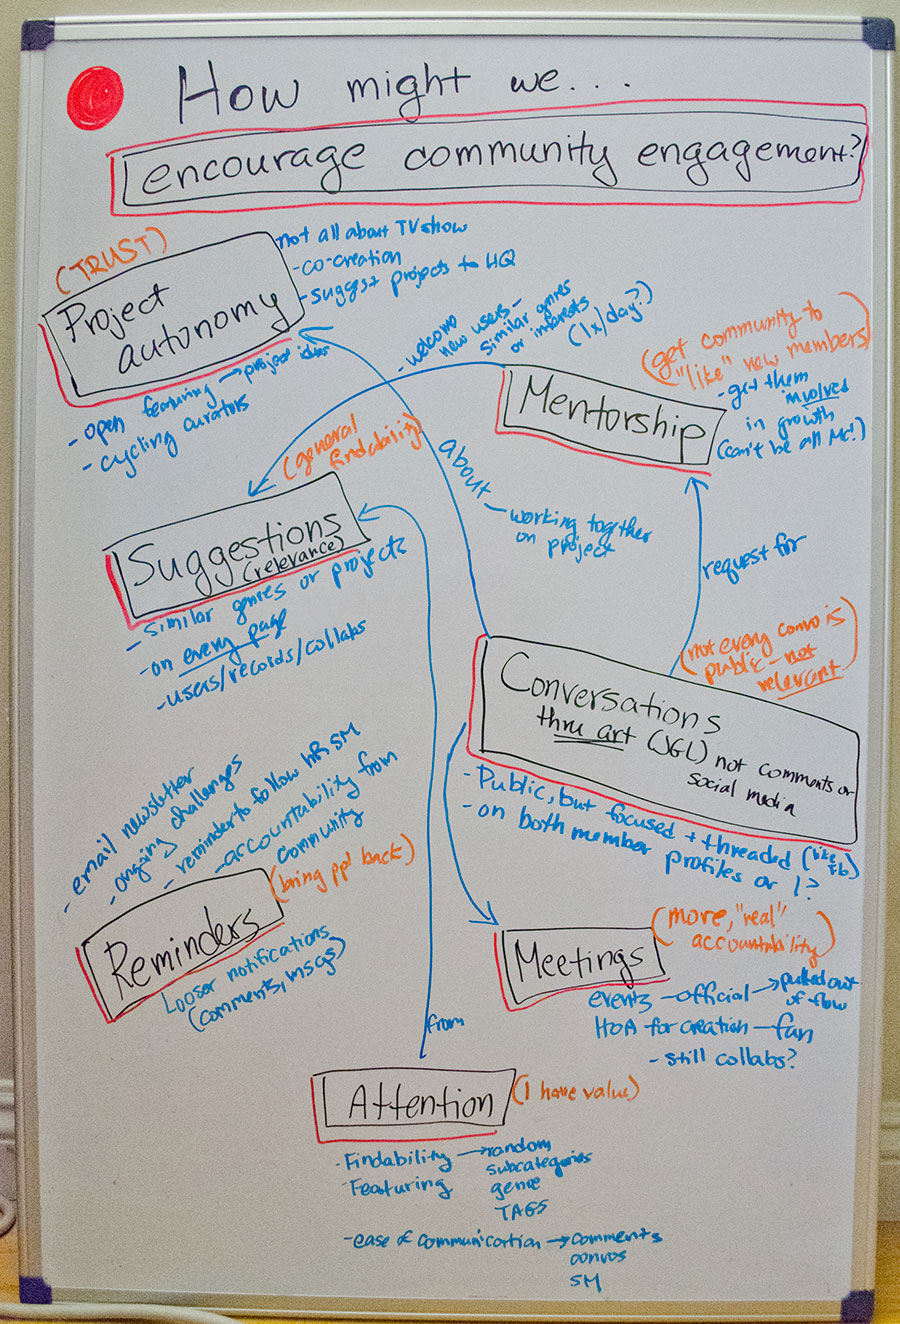 Whiteboard ideating out how to improve engagement